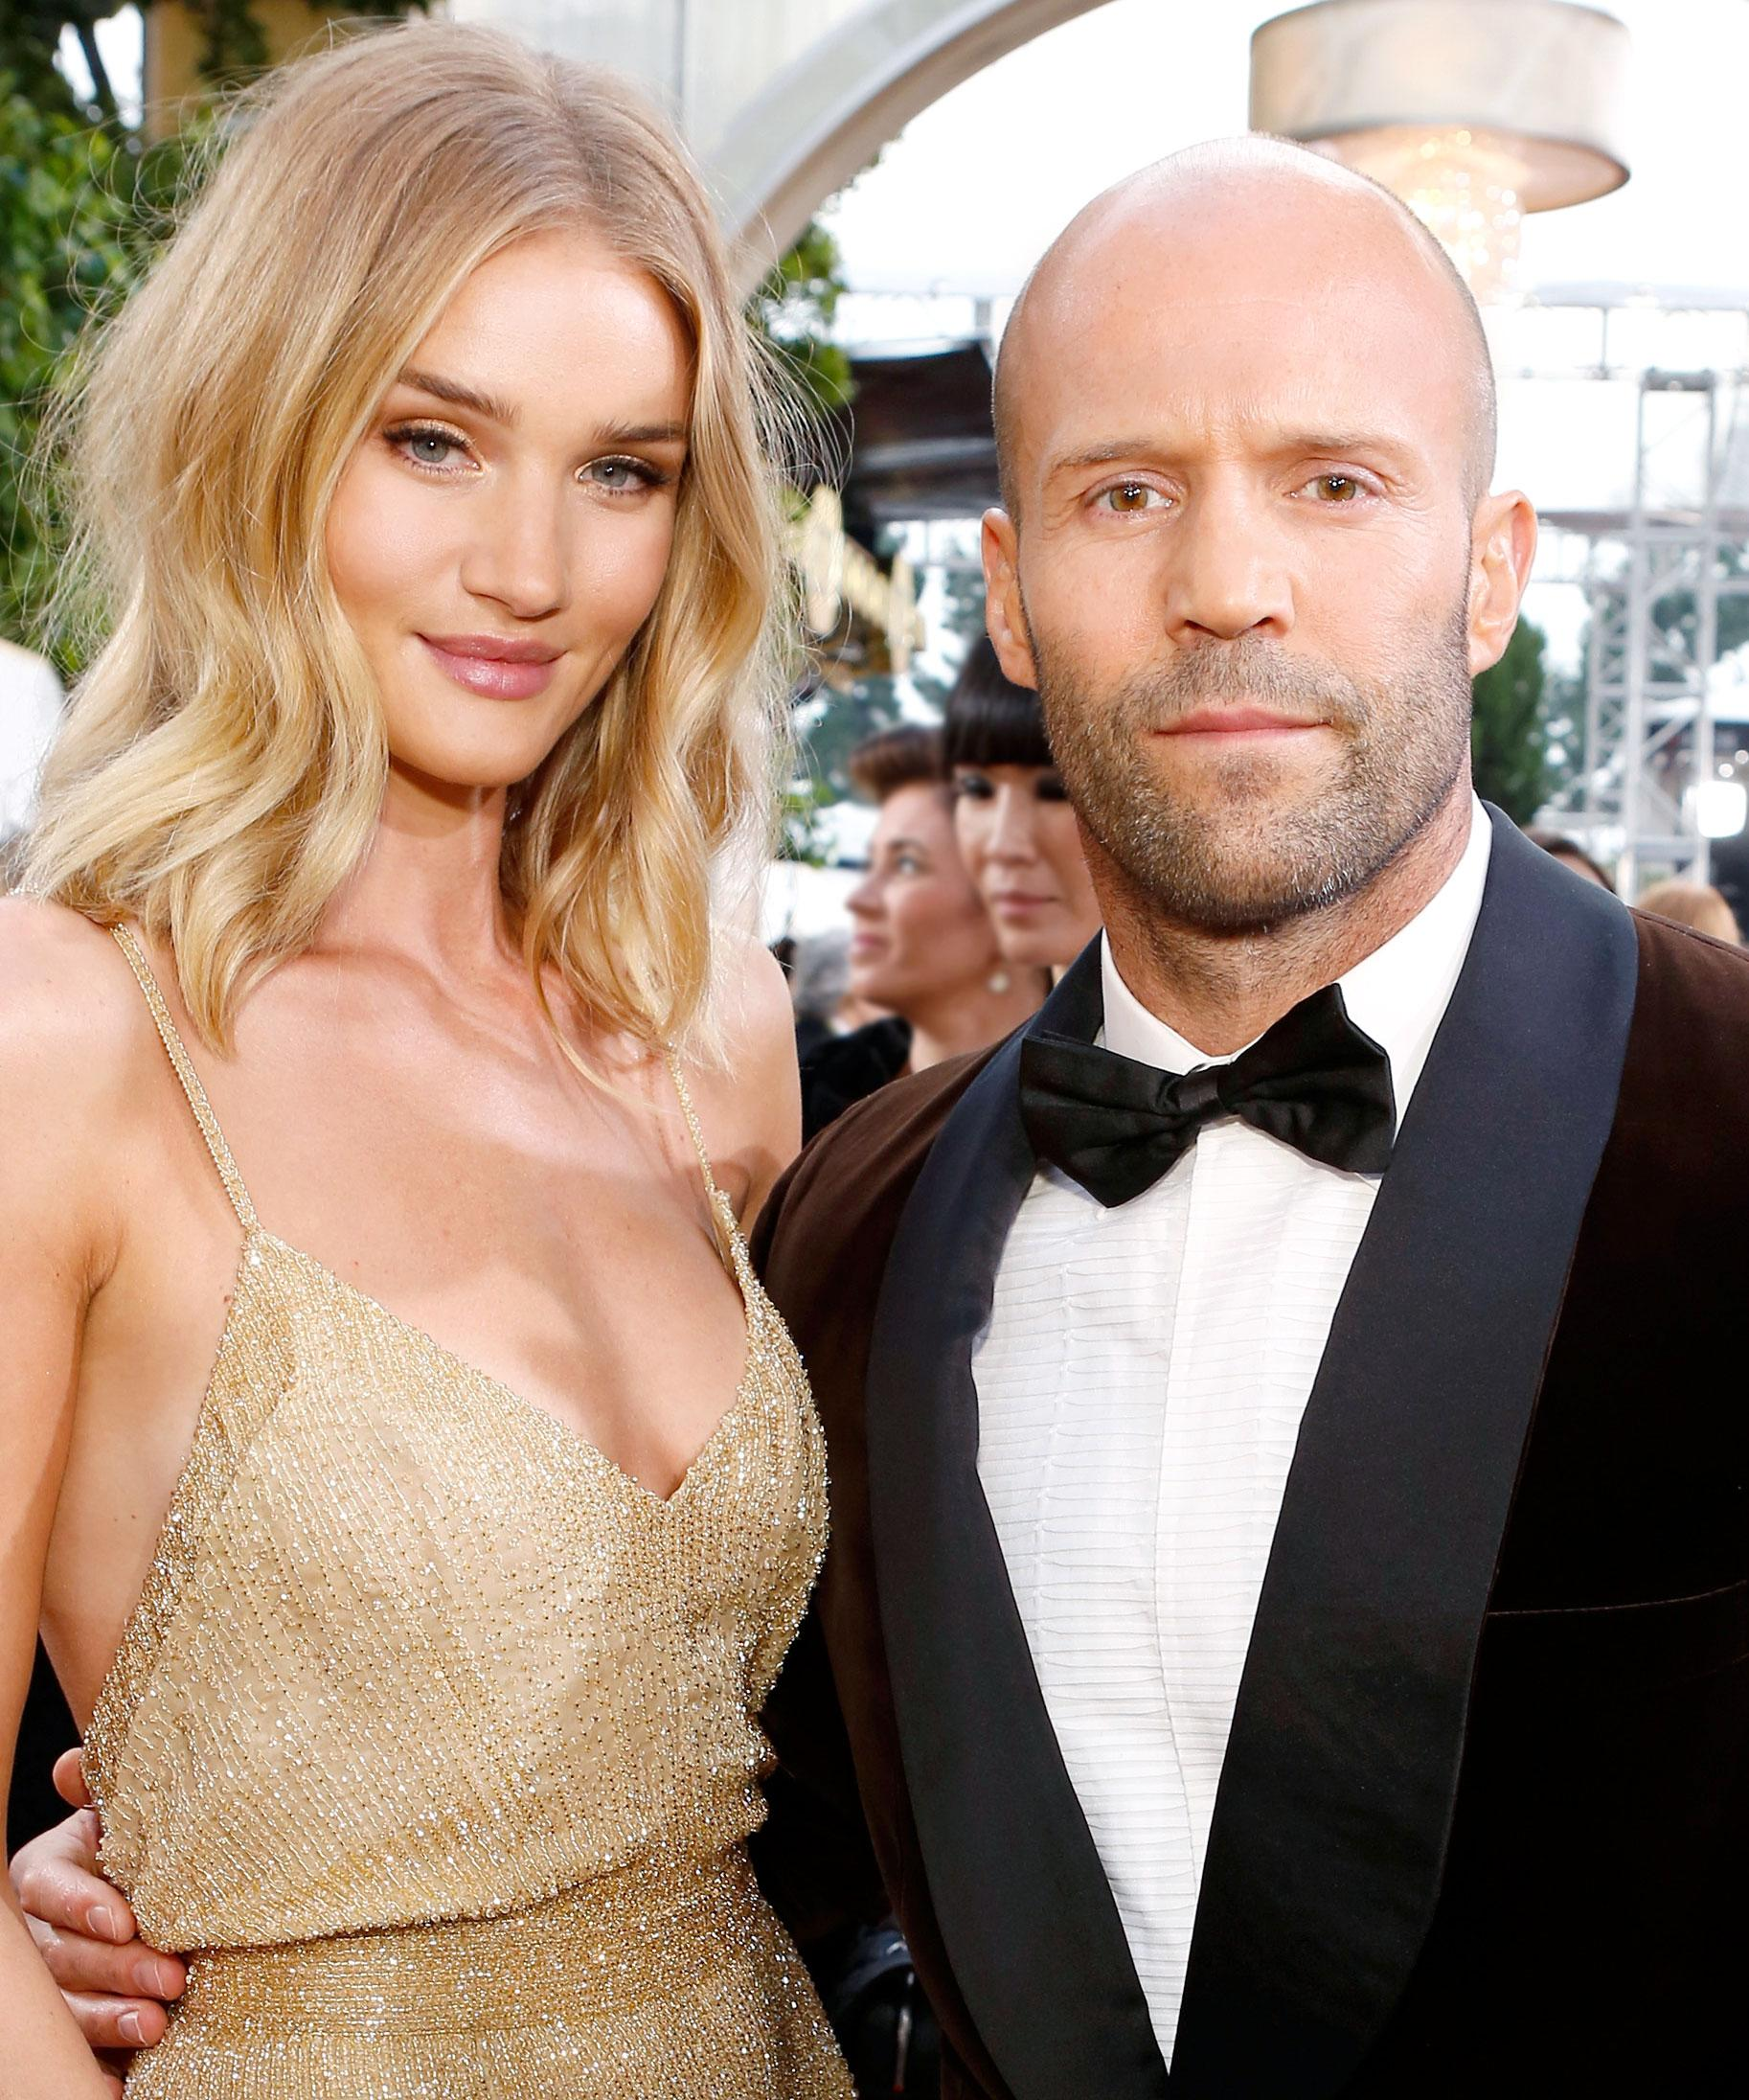 Rosie Huntington Whiteley And Jason Statham Are Parents See The Adorable First Photo